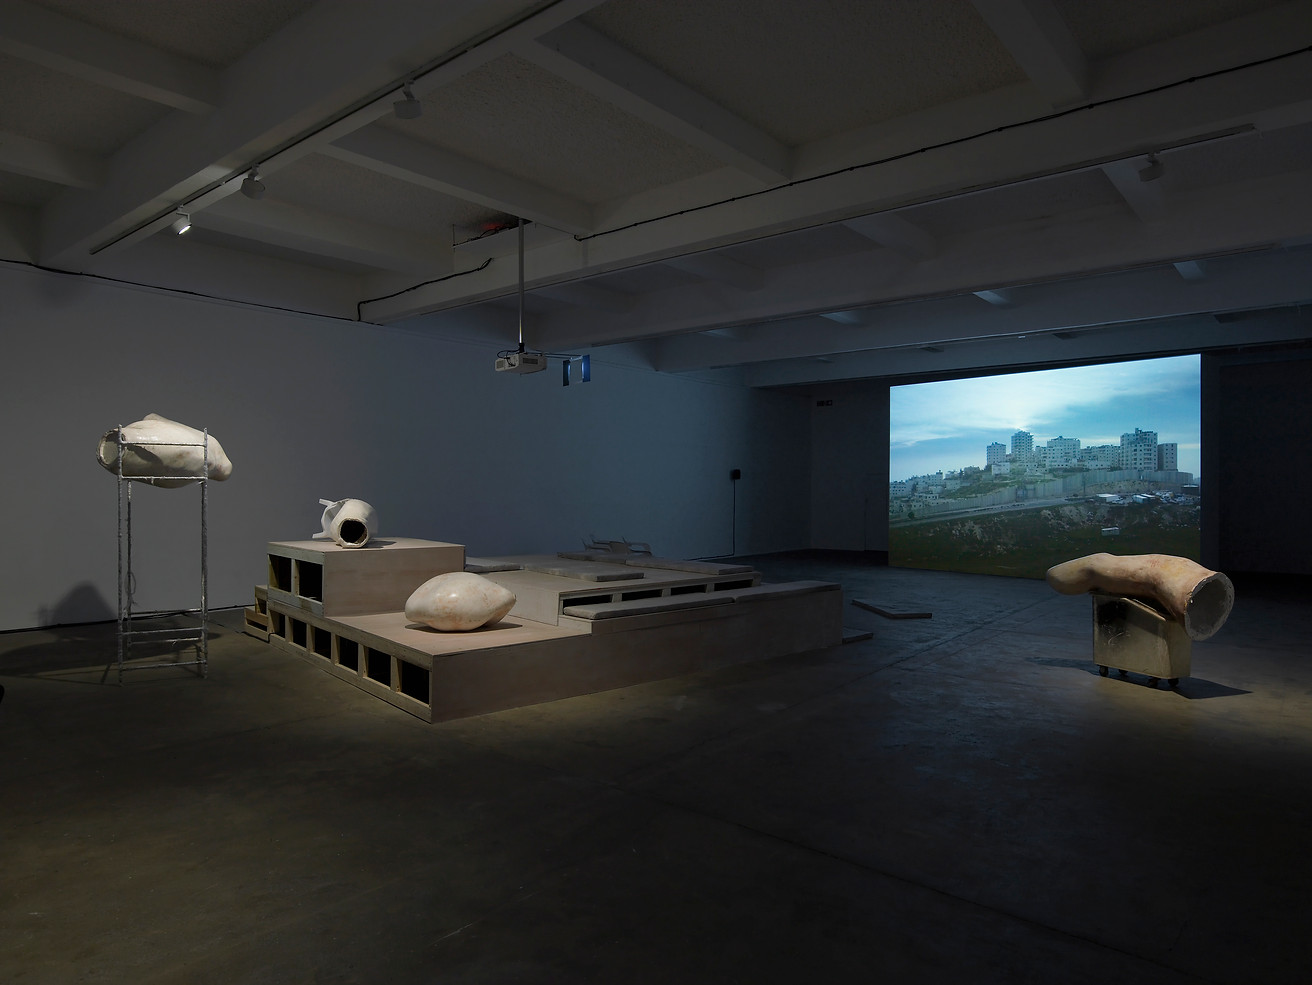 A Magical Substance Flows Into Me, Installation view, Chisenhale Gallery, 2015. Photo: Andy Keate